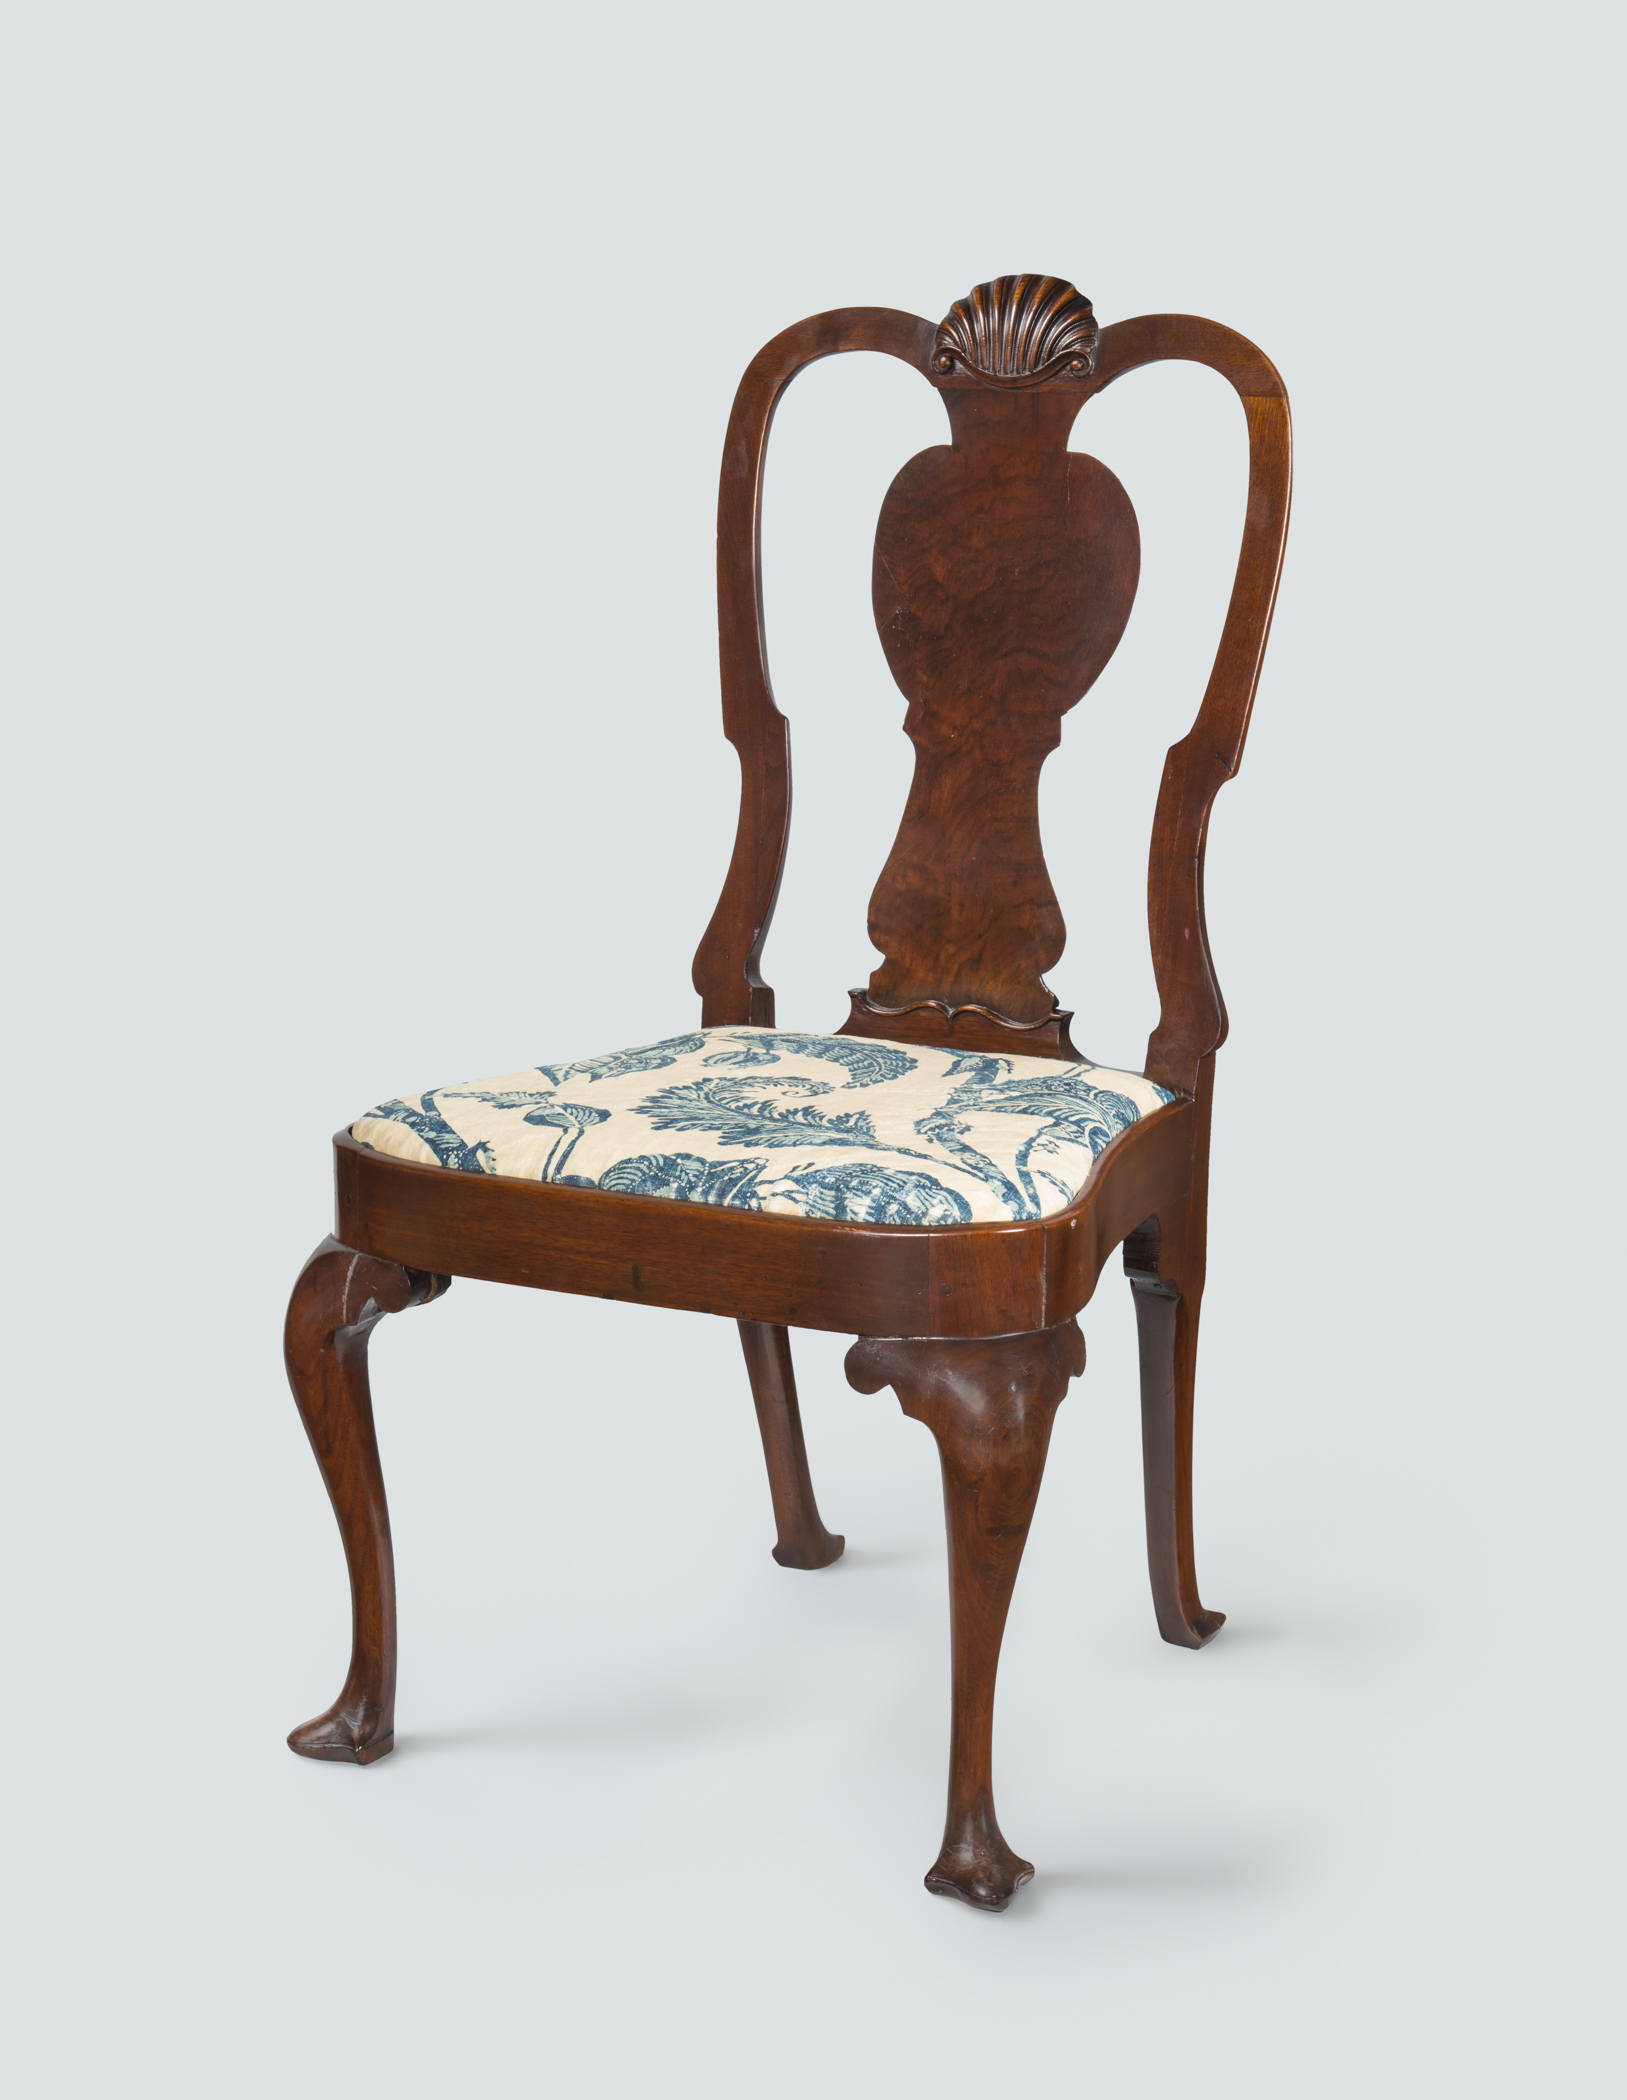 1952.0140 Chair, 1969.5461 Slip seat, view 1